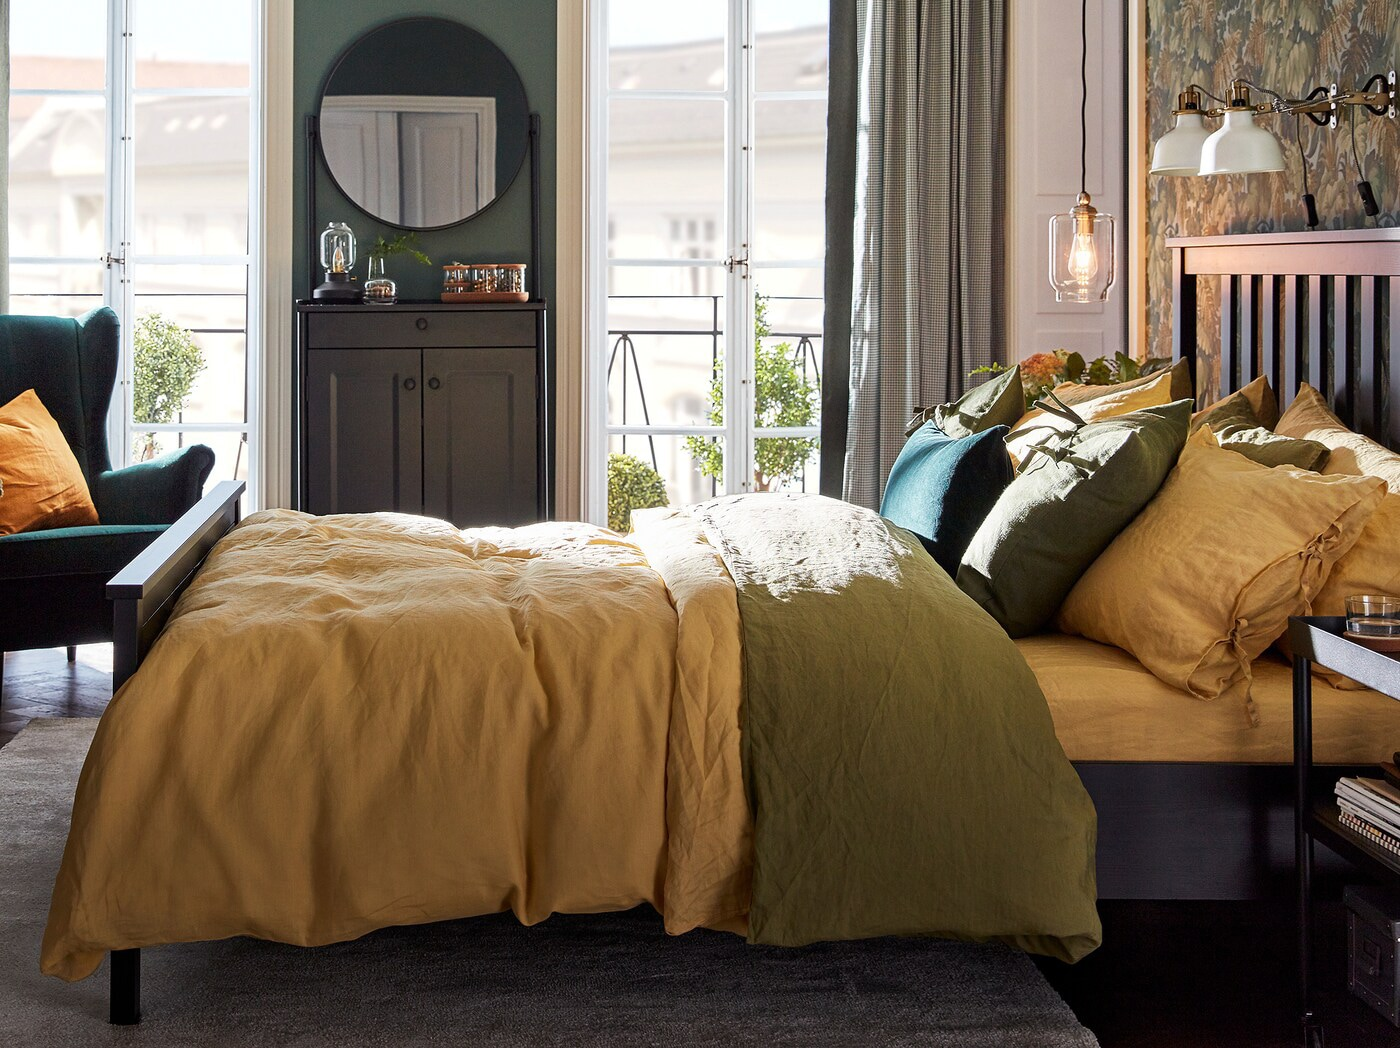 A bedroom has a bed with pillowcases and duvet covers in green and yellow, a cabinet with a mirror, and a green wing chair.